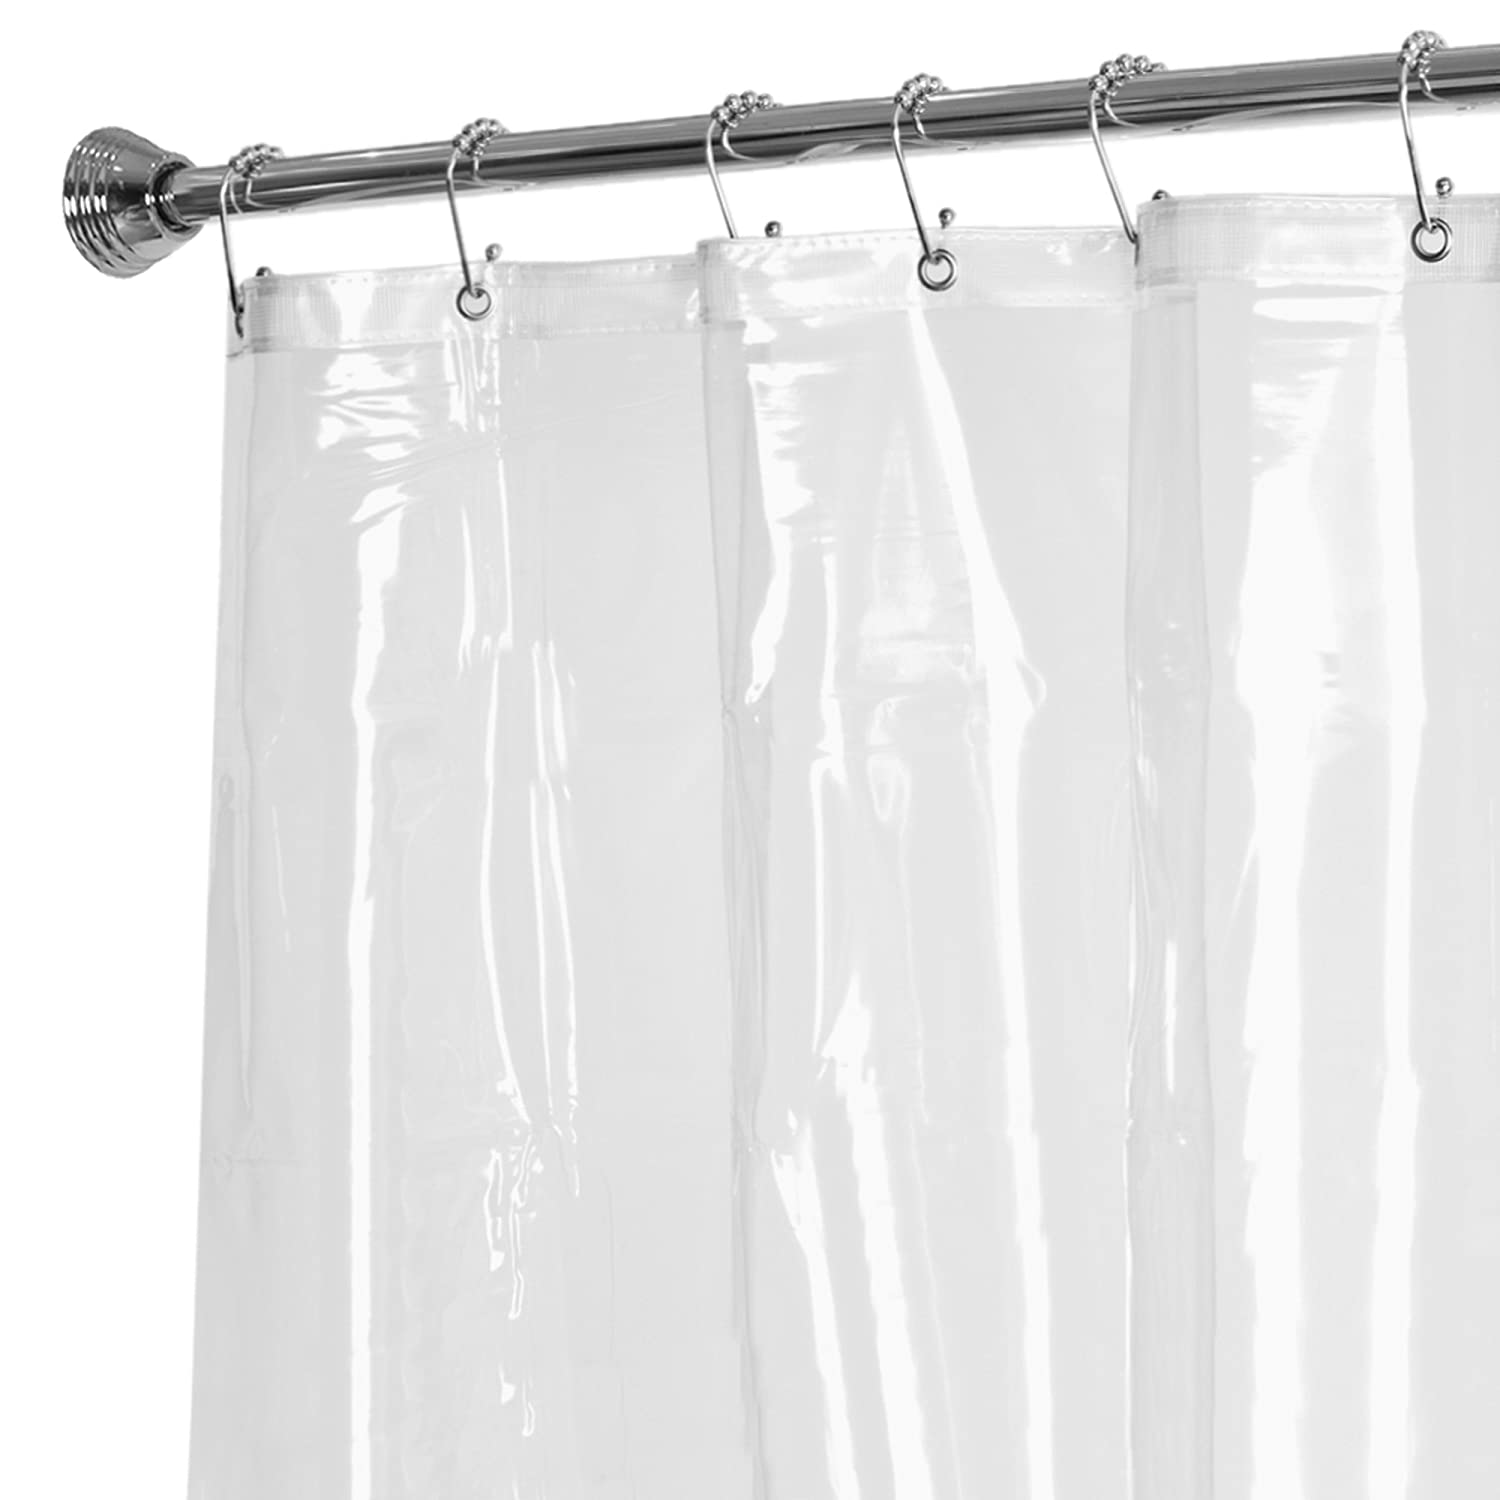 MAYTEX Super Heavyweight Premium 10 Gauge Shower Curtain or Liner with Rustproof Metal Grommets, Clear, 72 inch x 72 inch in Vinyl-This Product is Treated with an Agent to Resist Mildew